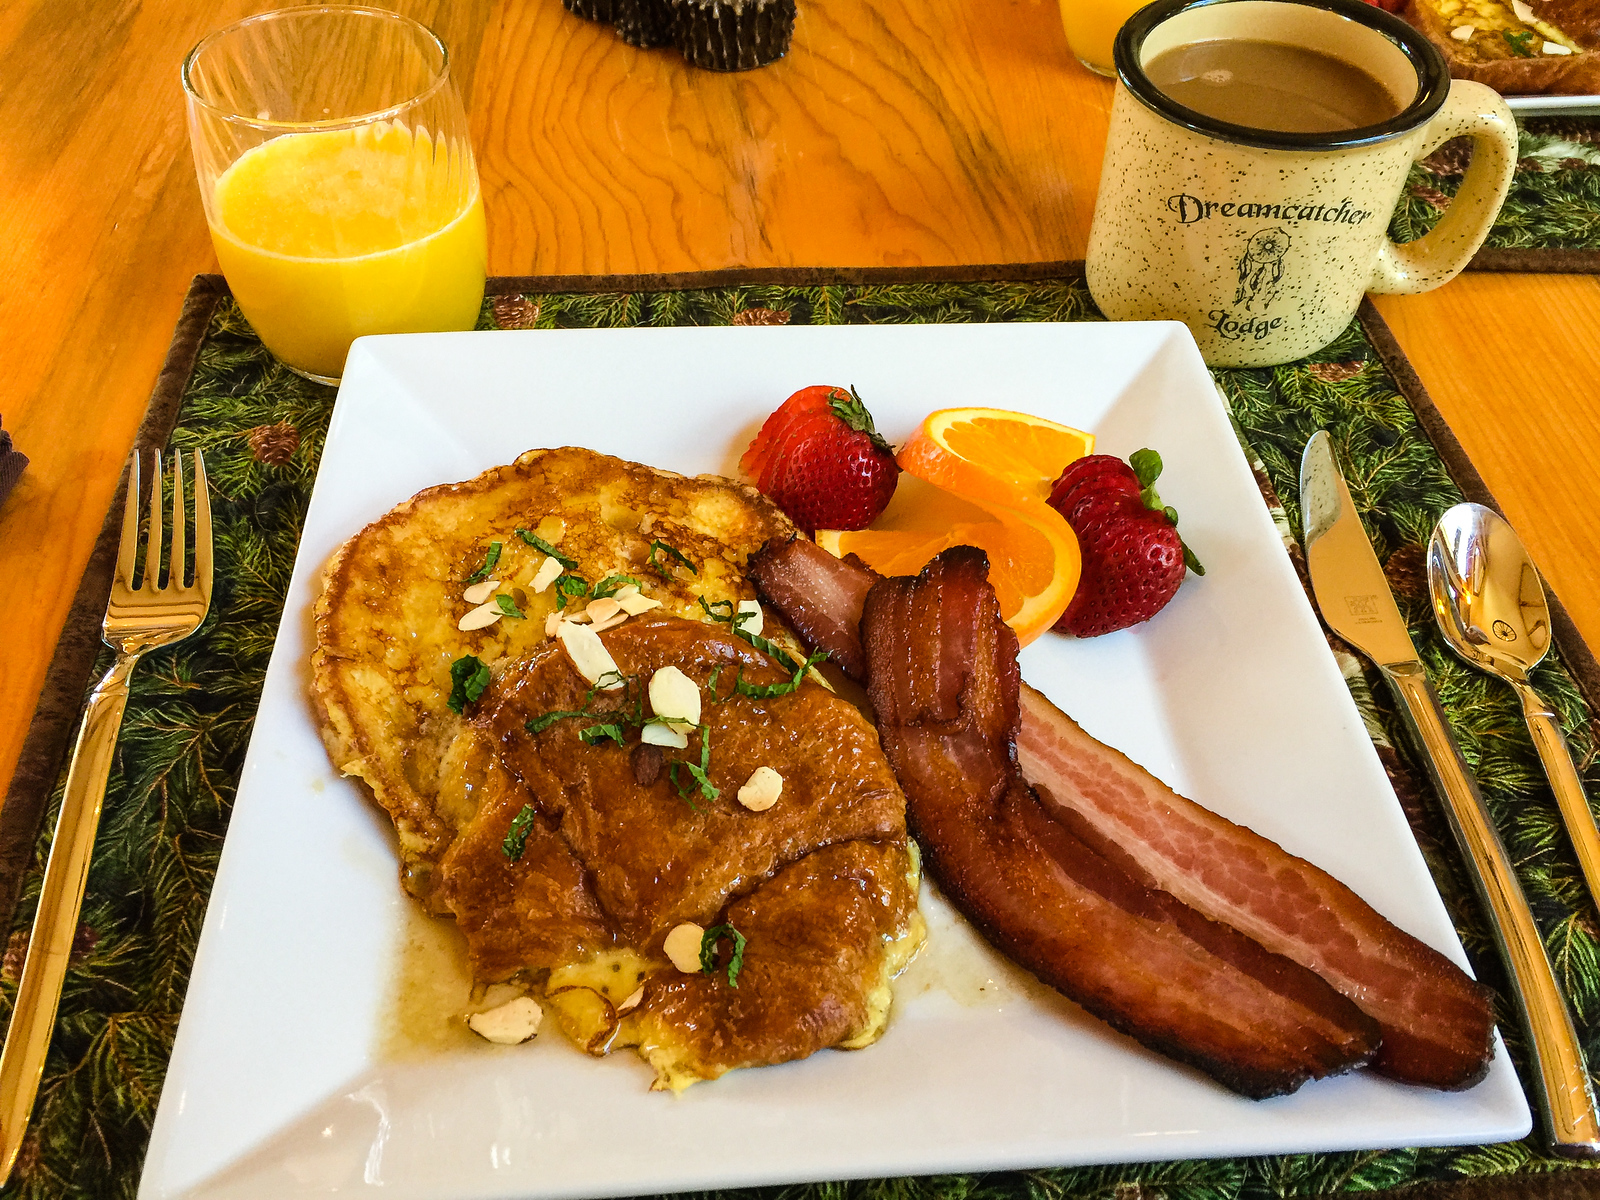 Almond croissant French toast is one of the breakfast offerings at Dreamcatcher Lodge in Kalispell, Montana.